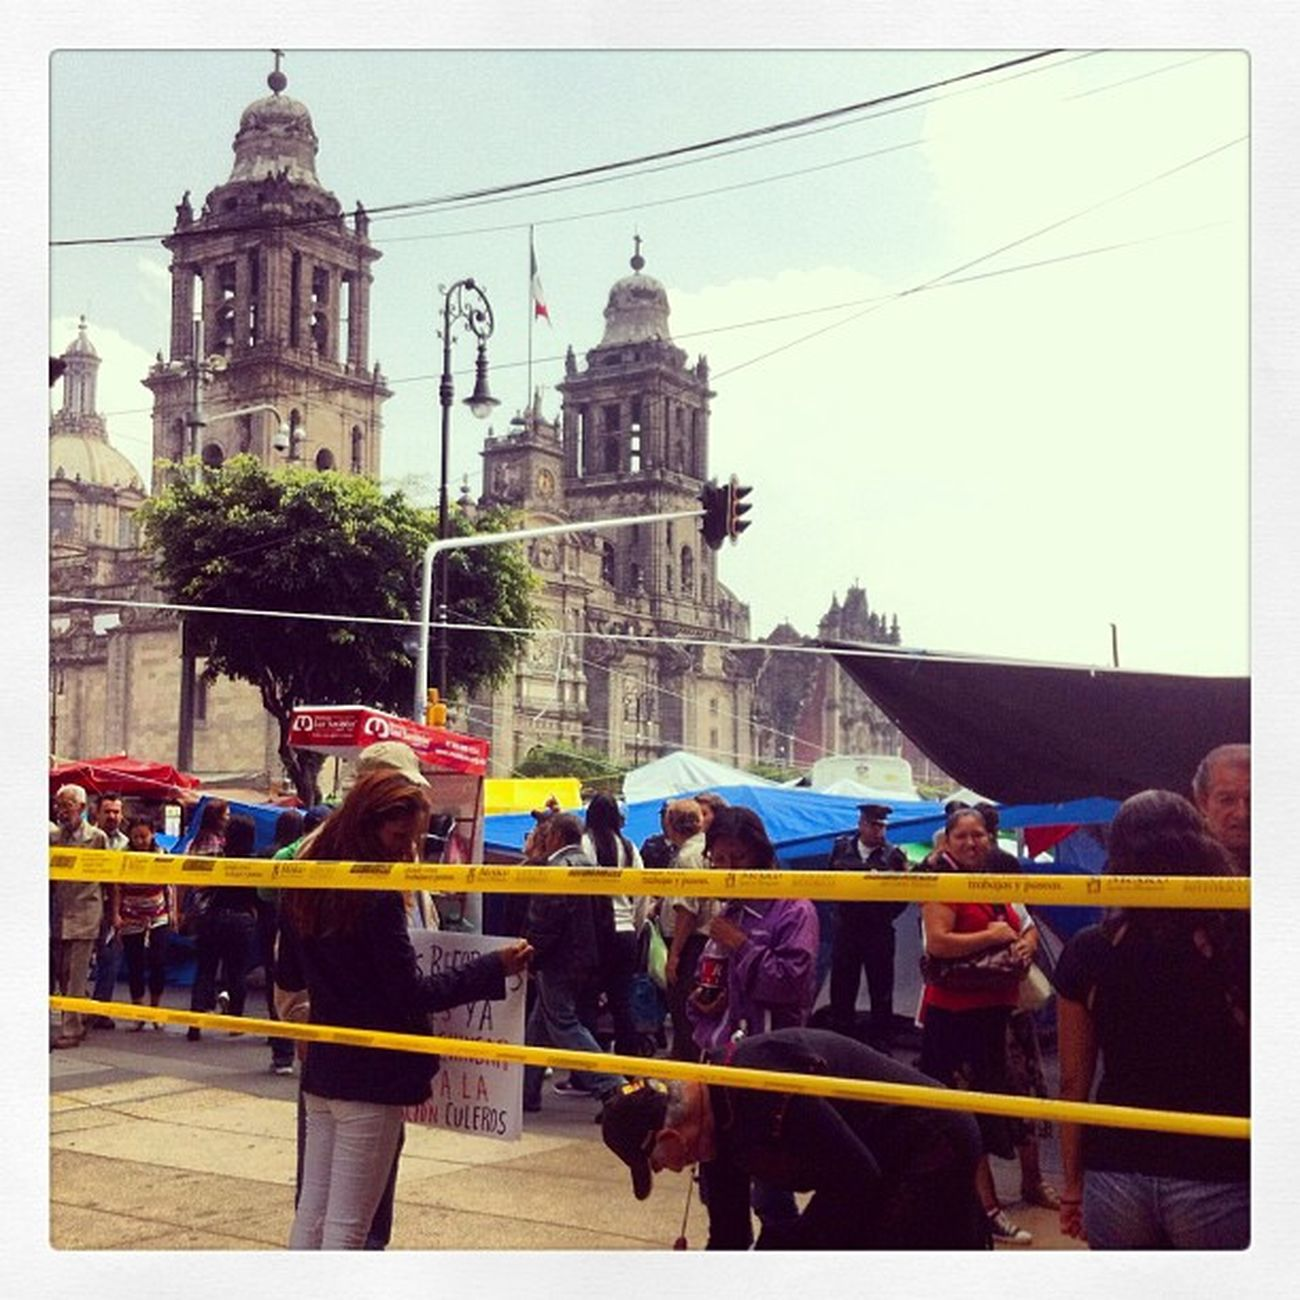 Mexico Zócalo Cnte Maestros punks df church iglesia blue downtown caution full morning people centro instapic septiembre